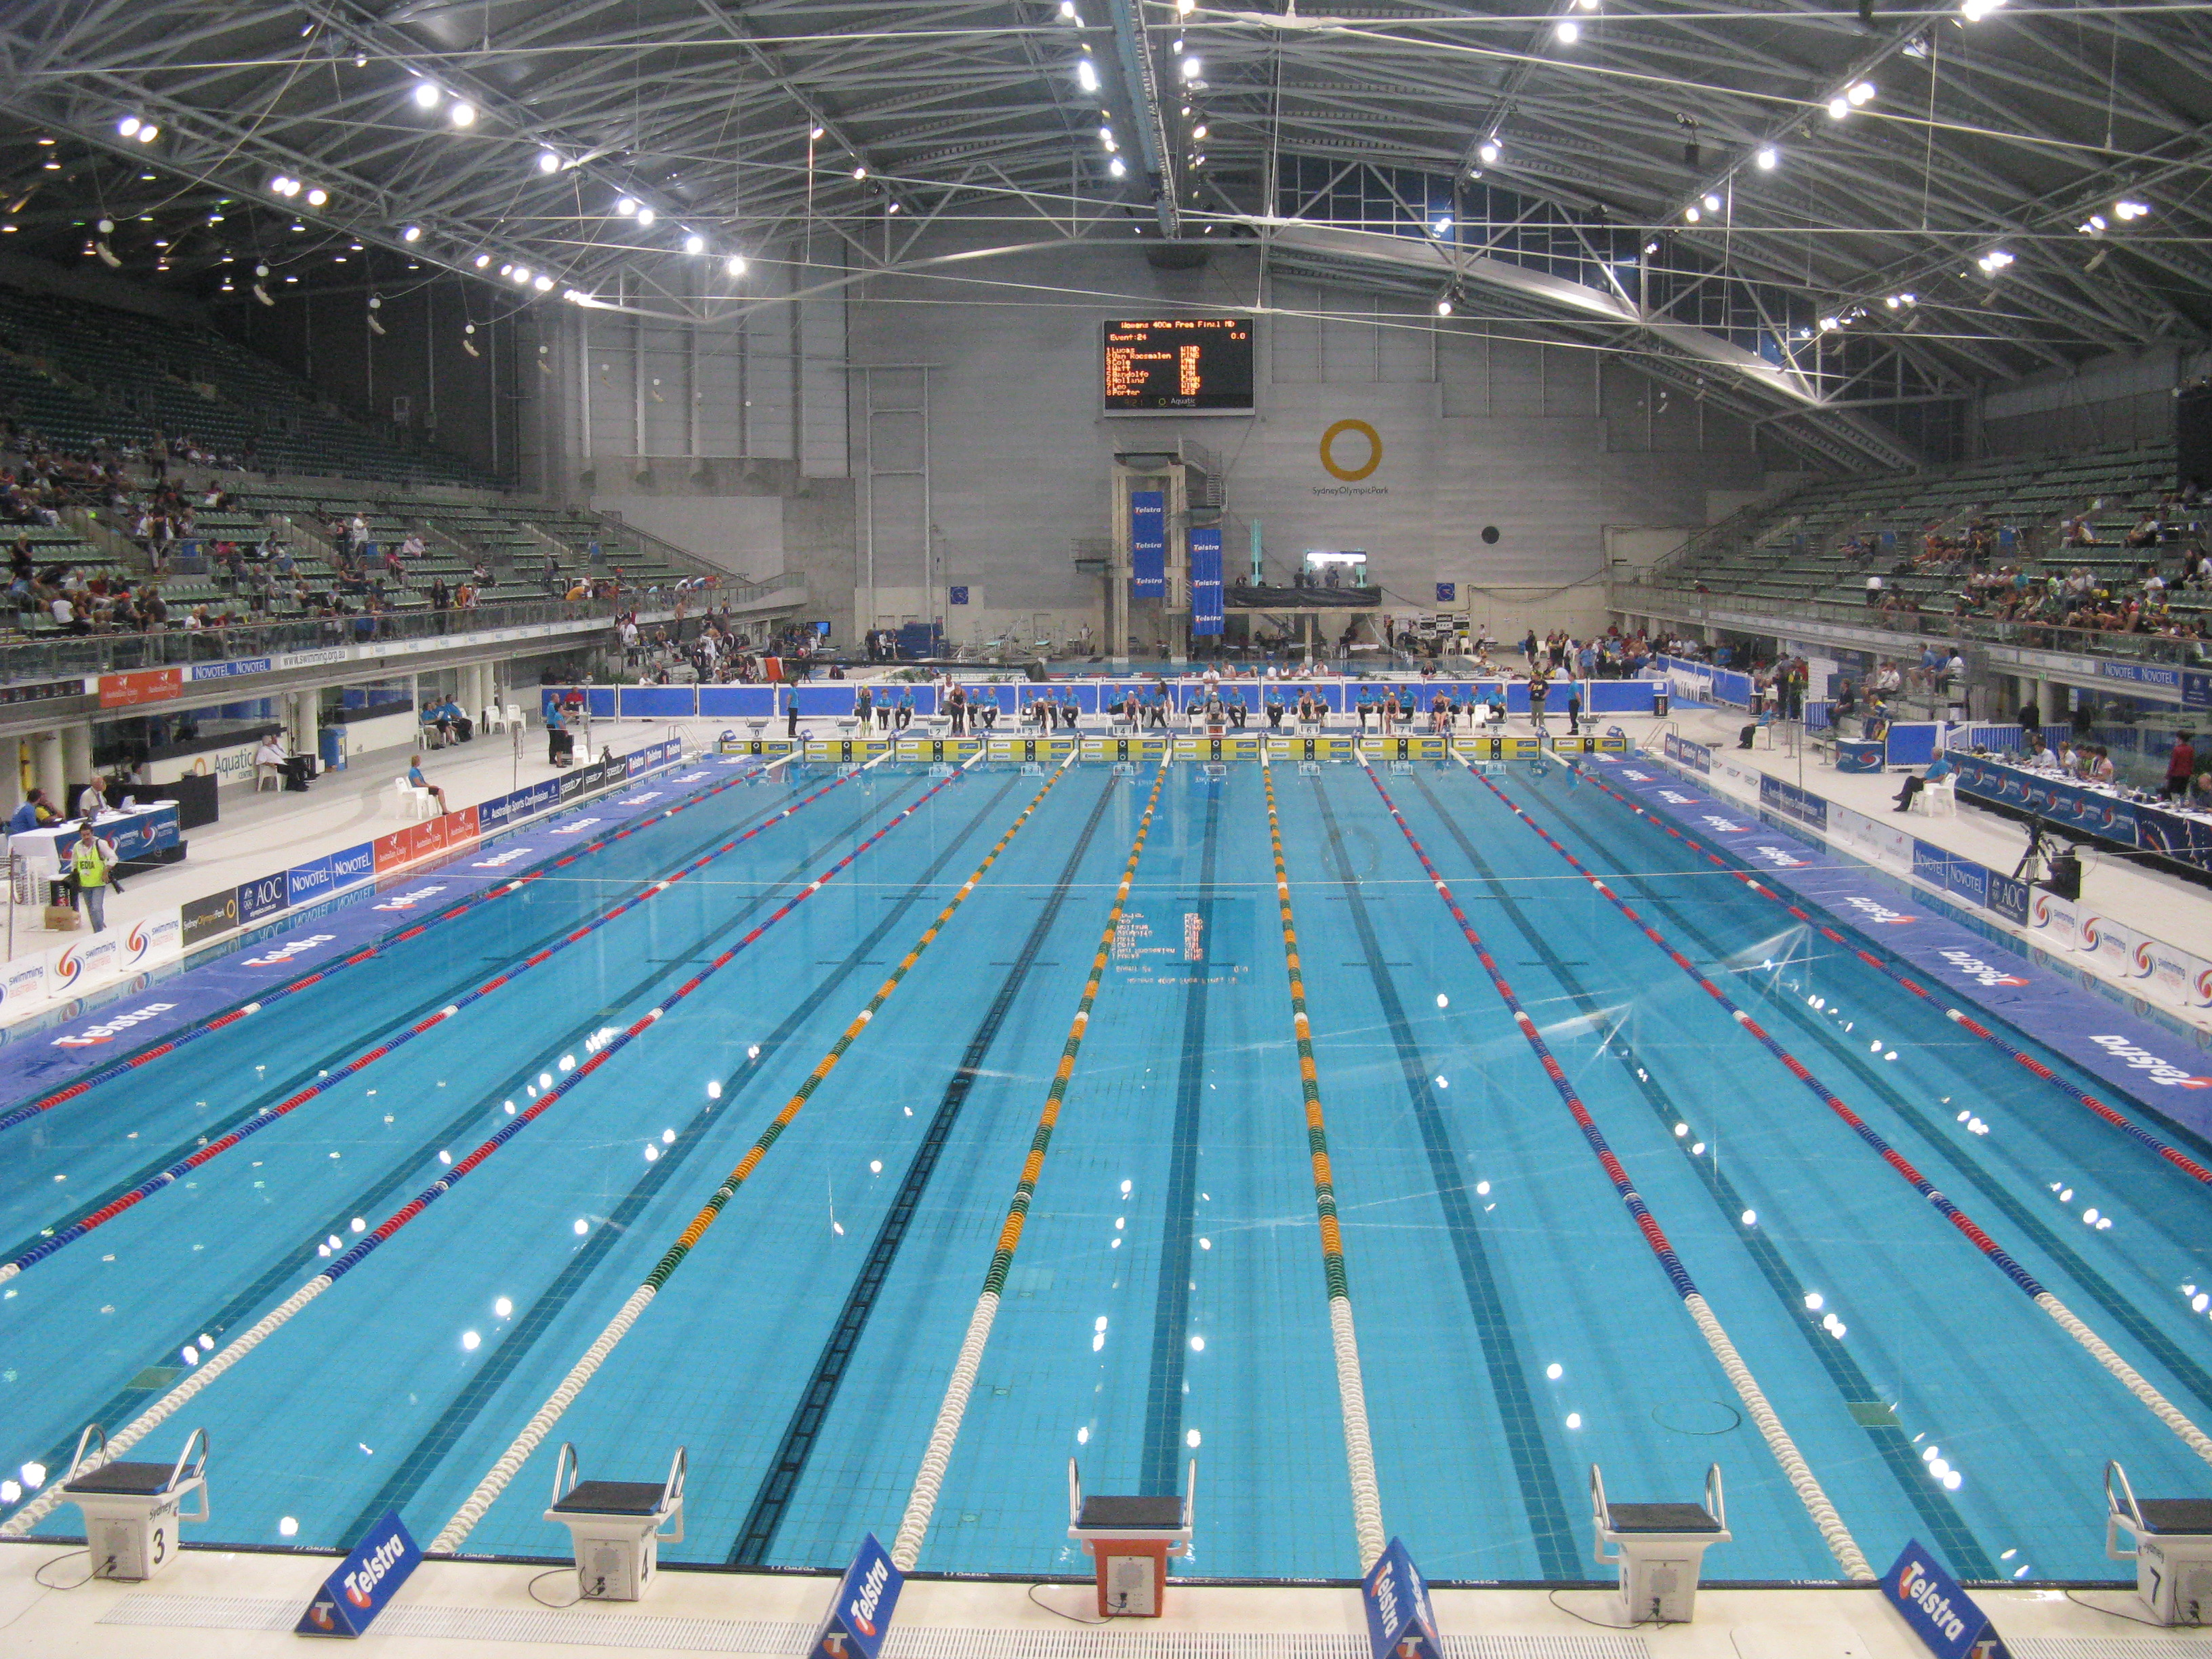 filesydney olympic park aquatic centre 5714949105jpg - Olympic Swimming Pool 2013